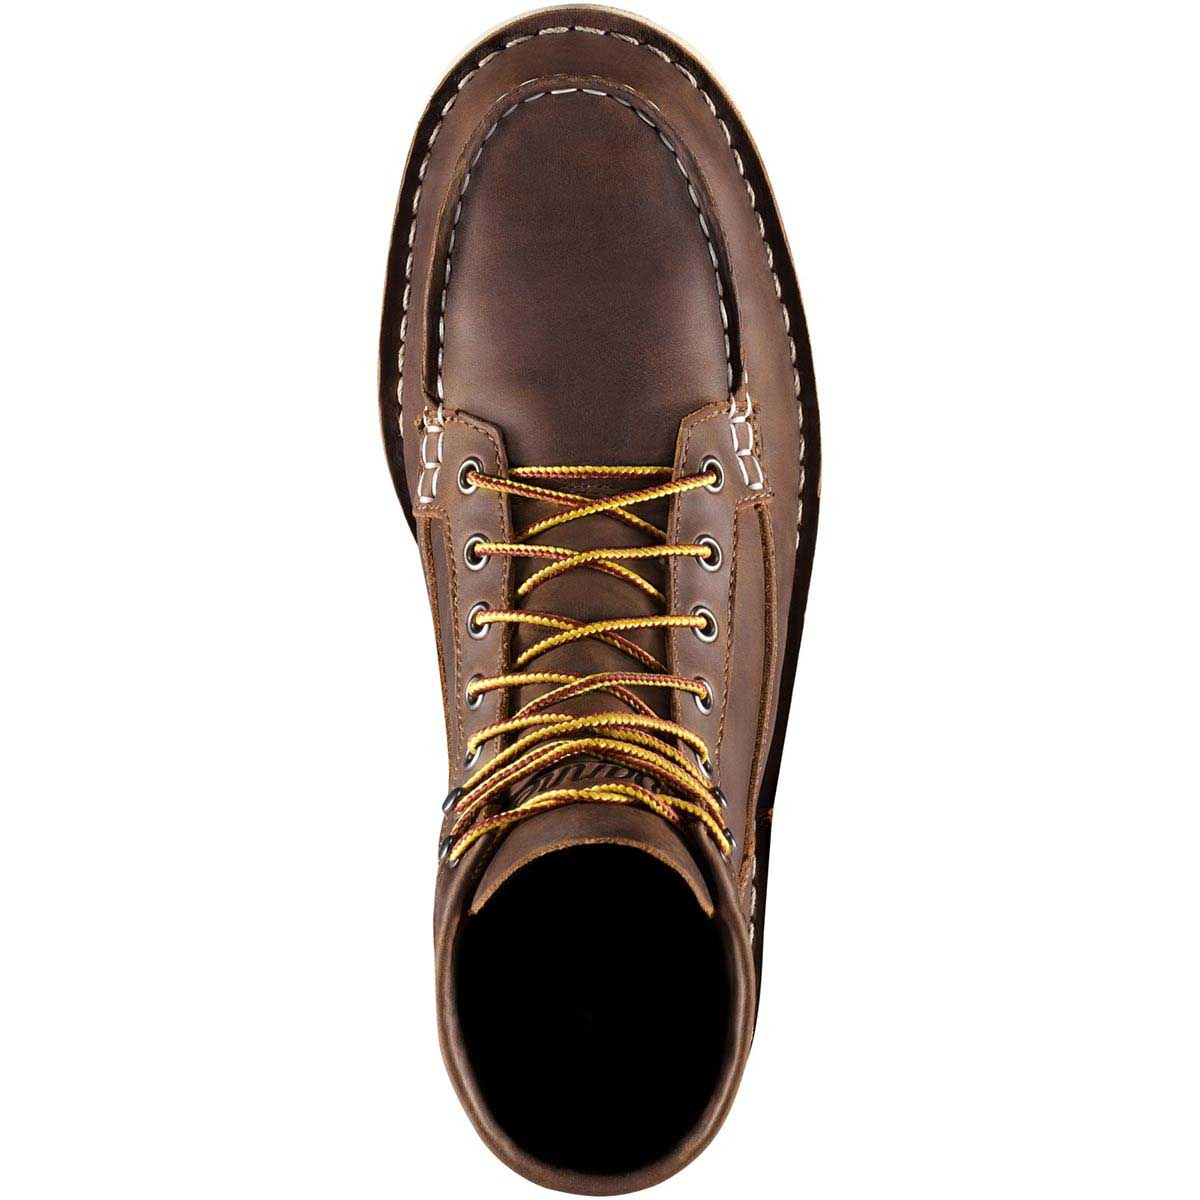 "Danner 6"" Bull Run Moc Toe Work Boot_5.jpg"